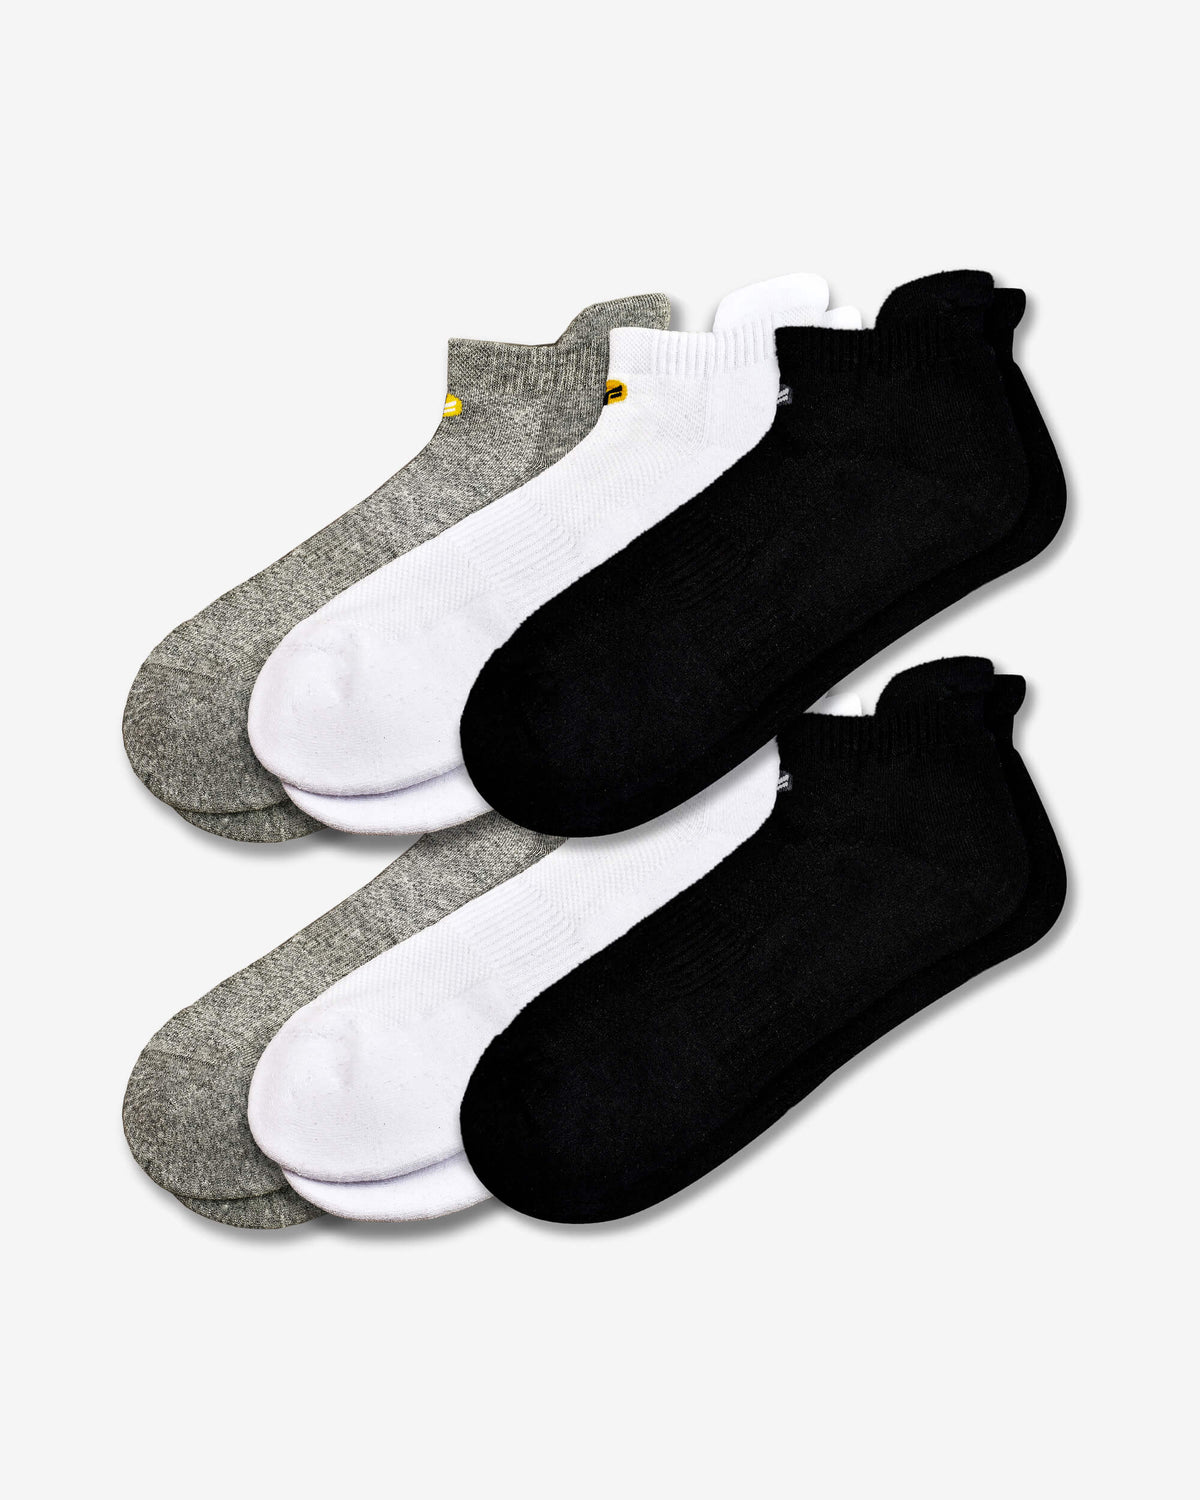 FitVille Long Staple Low Ankle Socks Pack Of 6 - FitVille Shoes